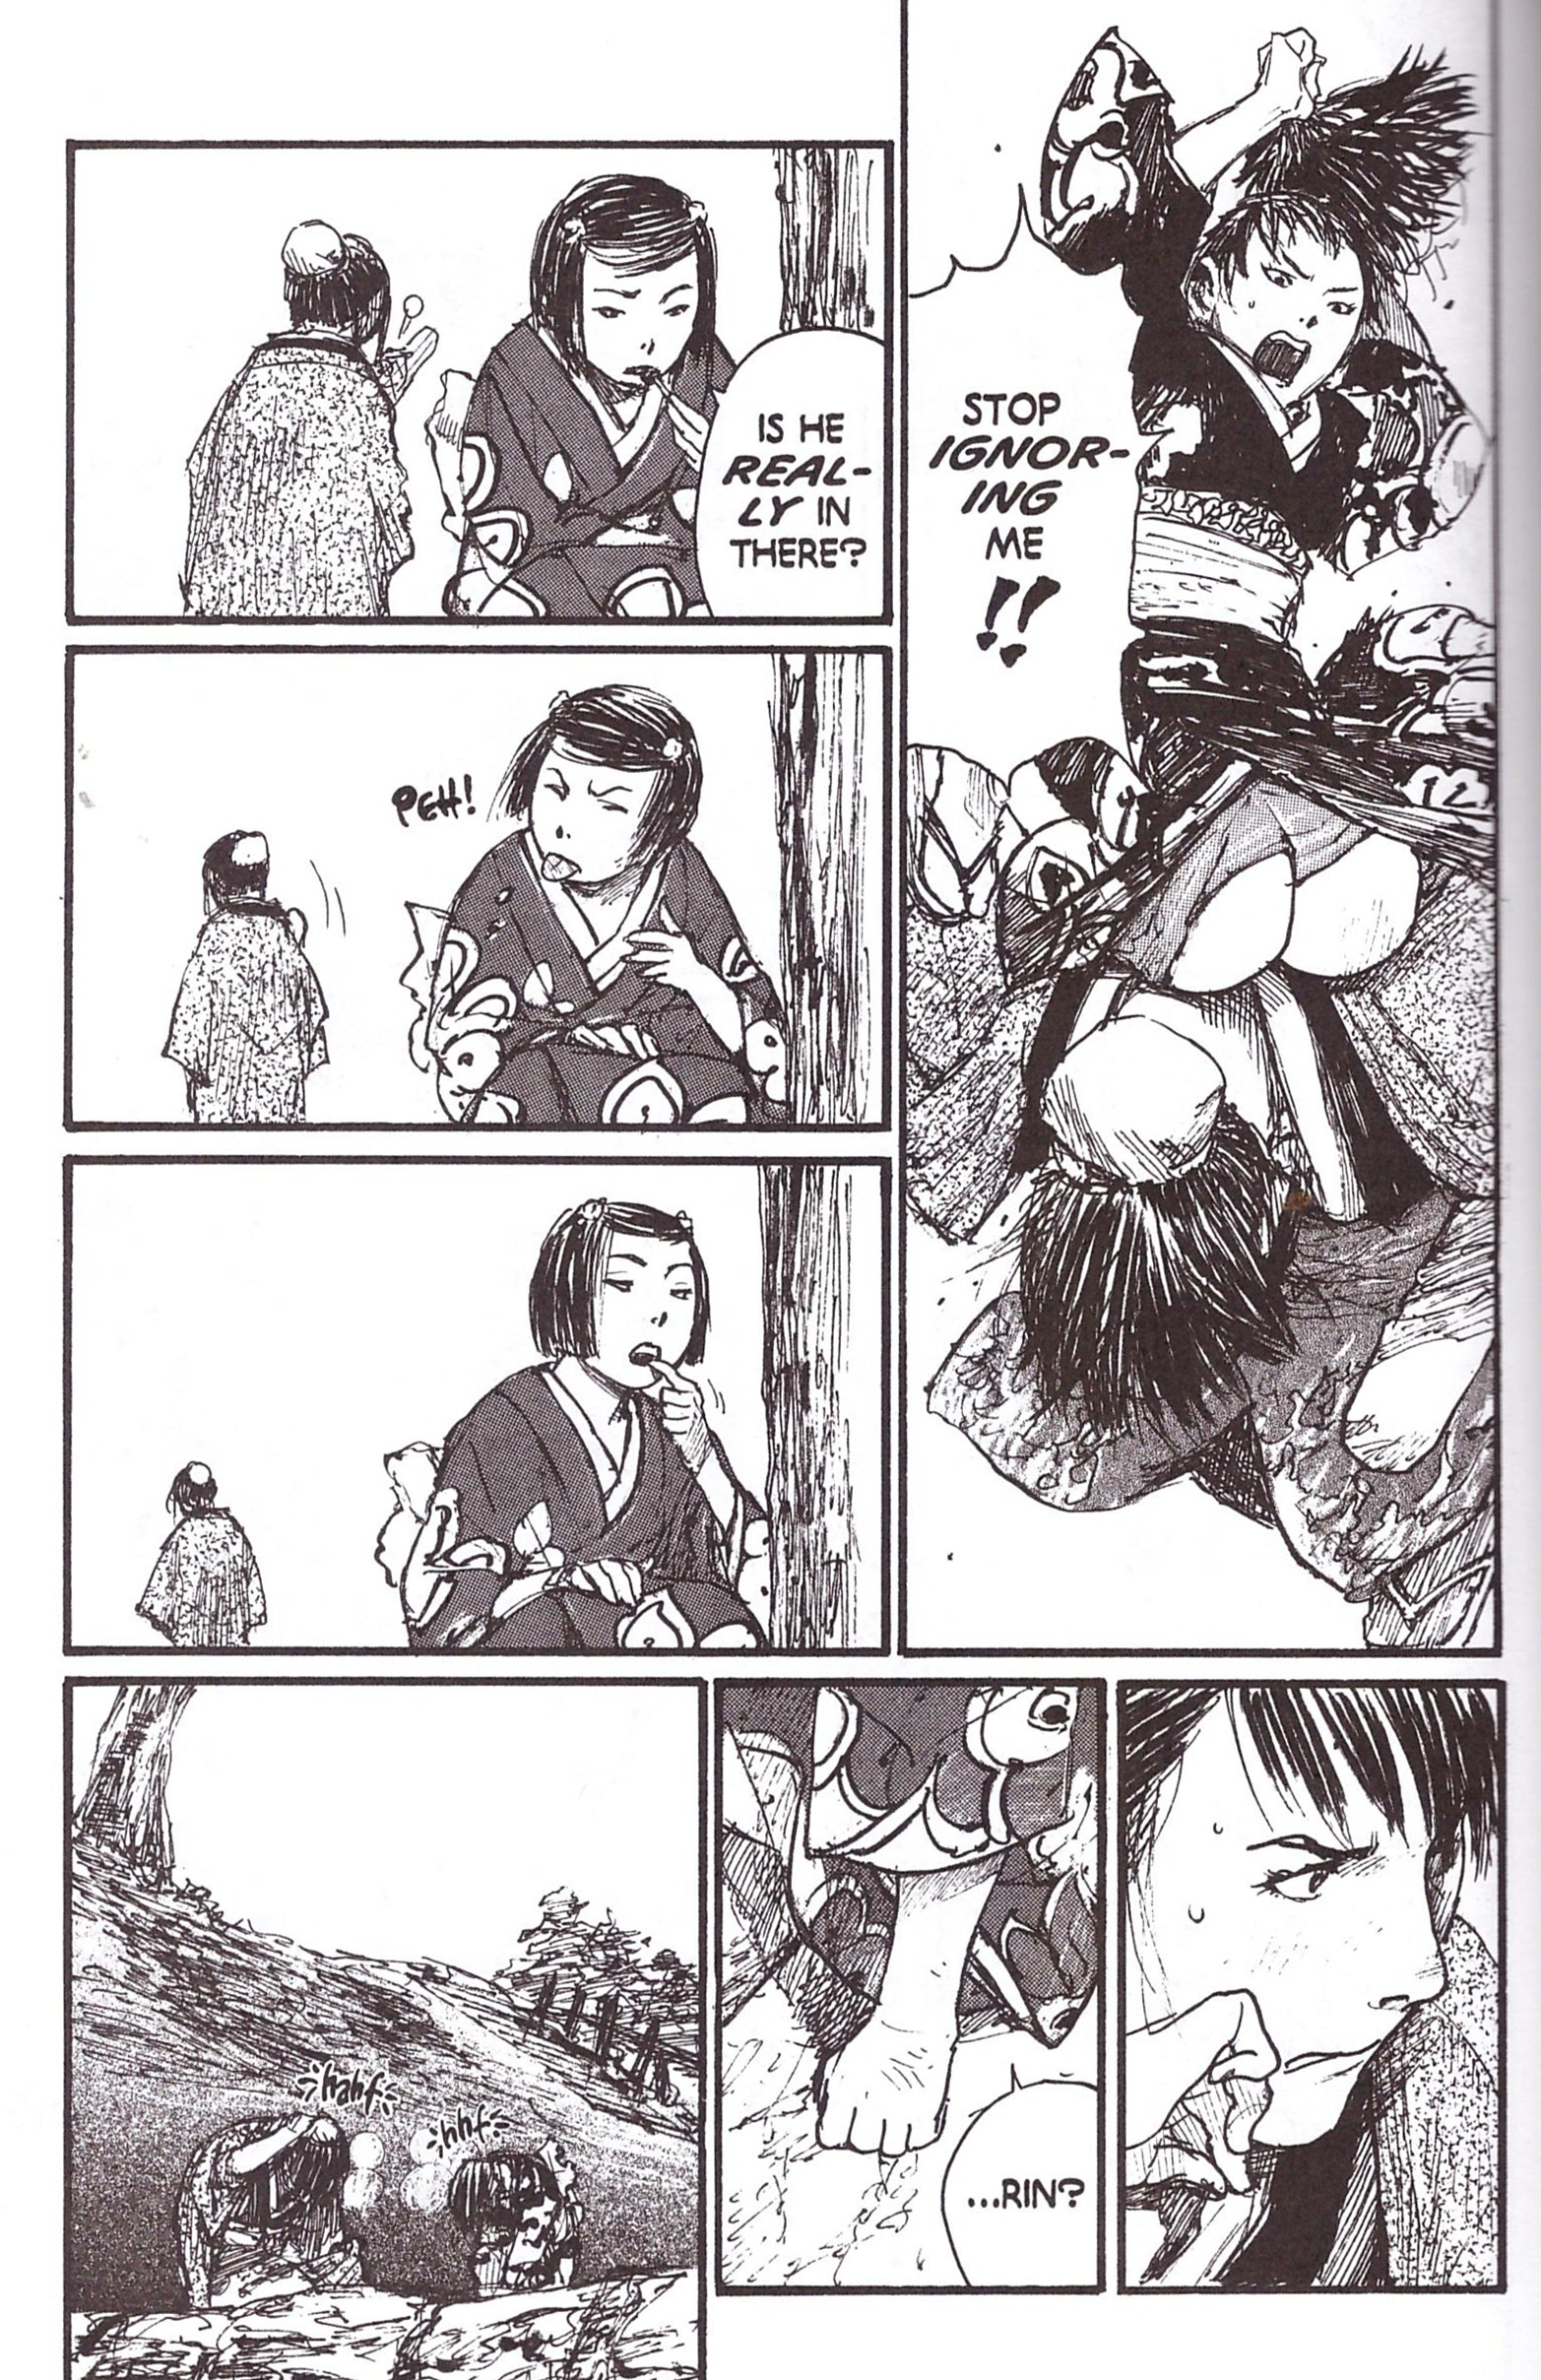 Blade of the Immortal 18 The Sparrow Net review